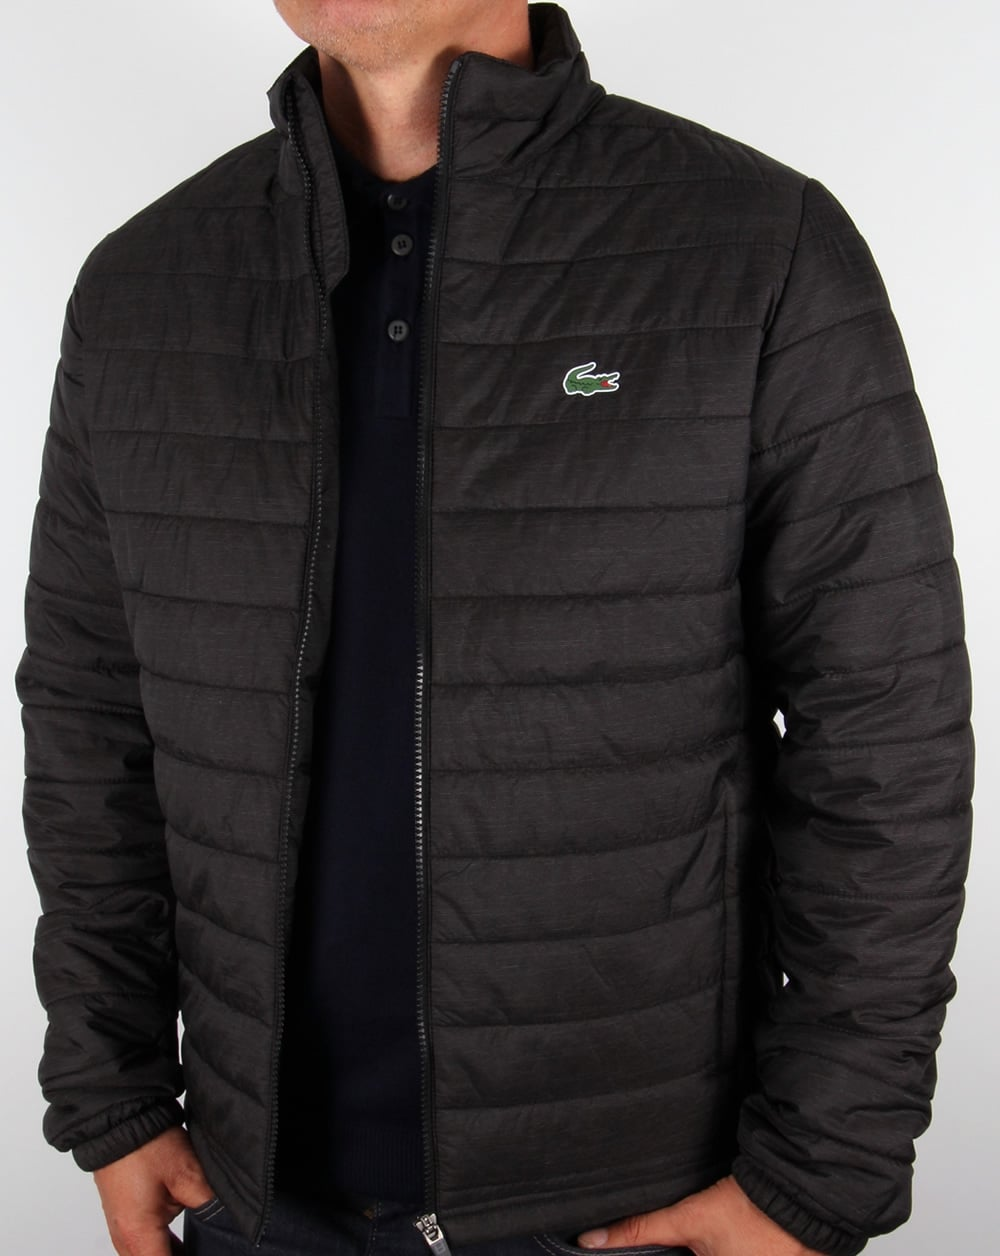 Patagonia Jackets For Men